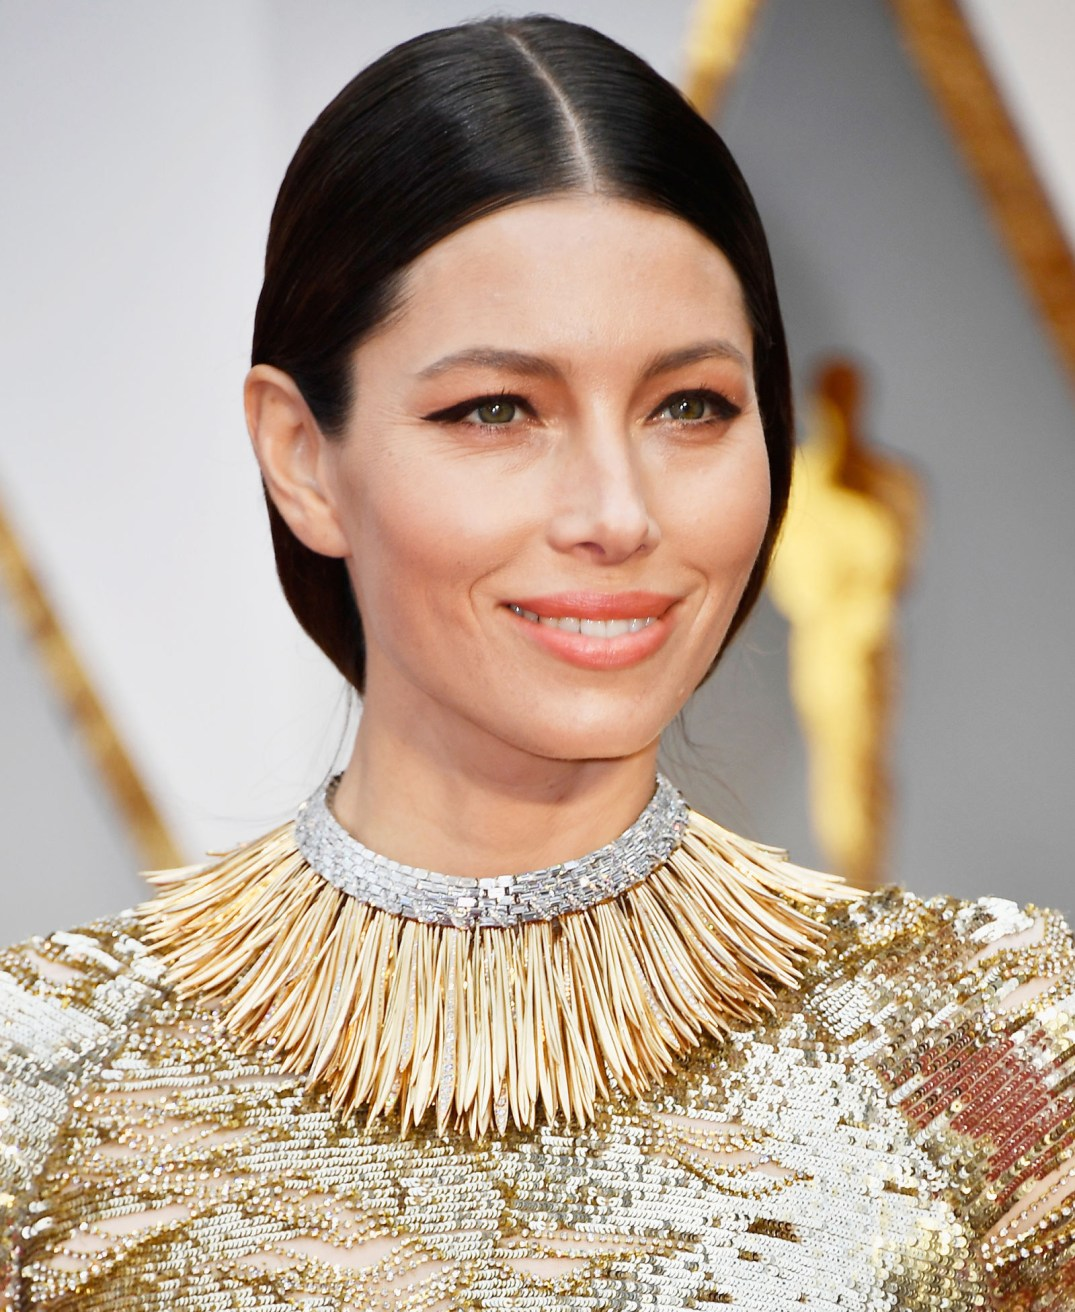 """Jessica Biel wears a handcrafted Tiffany And Co's """"Whisper Of The Rain"""" collar necklace, made using over 350 uniquely shaped 18k yellow gold fronds and over 200 baguette diamonds. The collar is roughly 60 carats. Its from their 2017 Blue Book Collection. PC- Harper's Bazaar"""